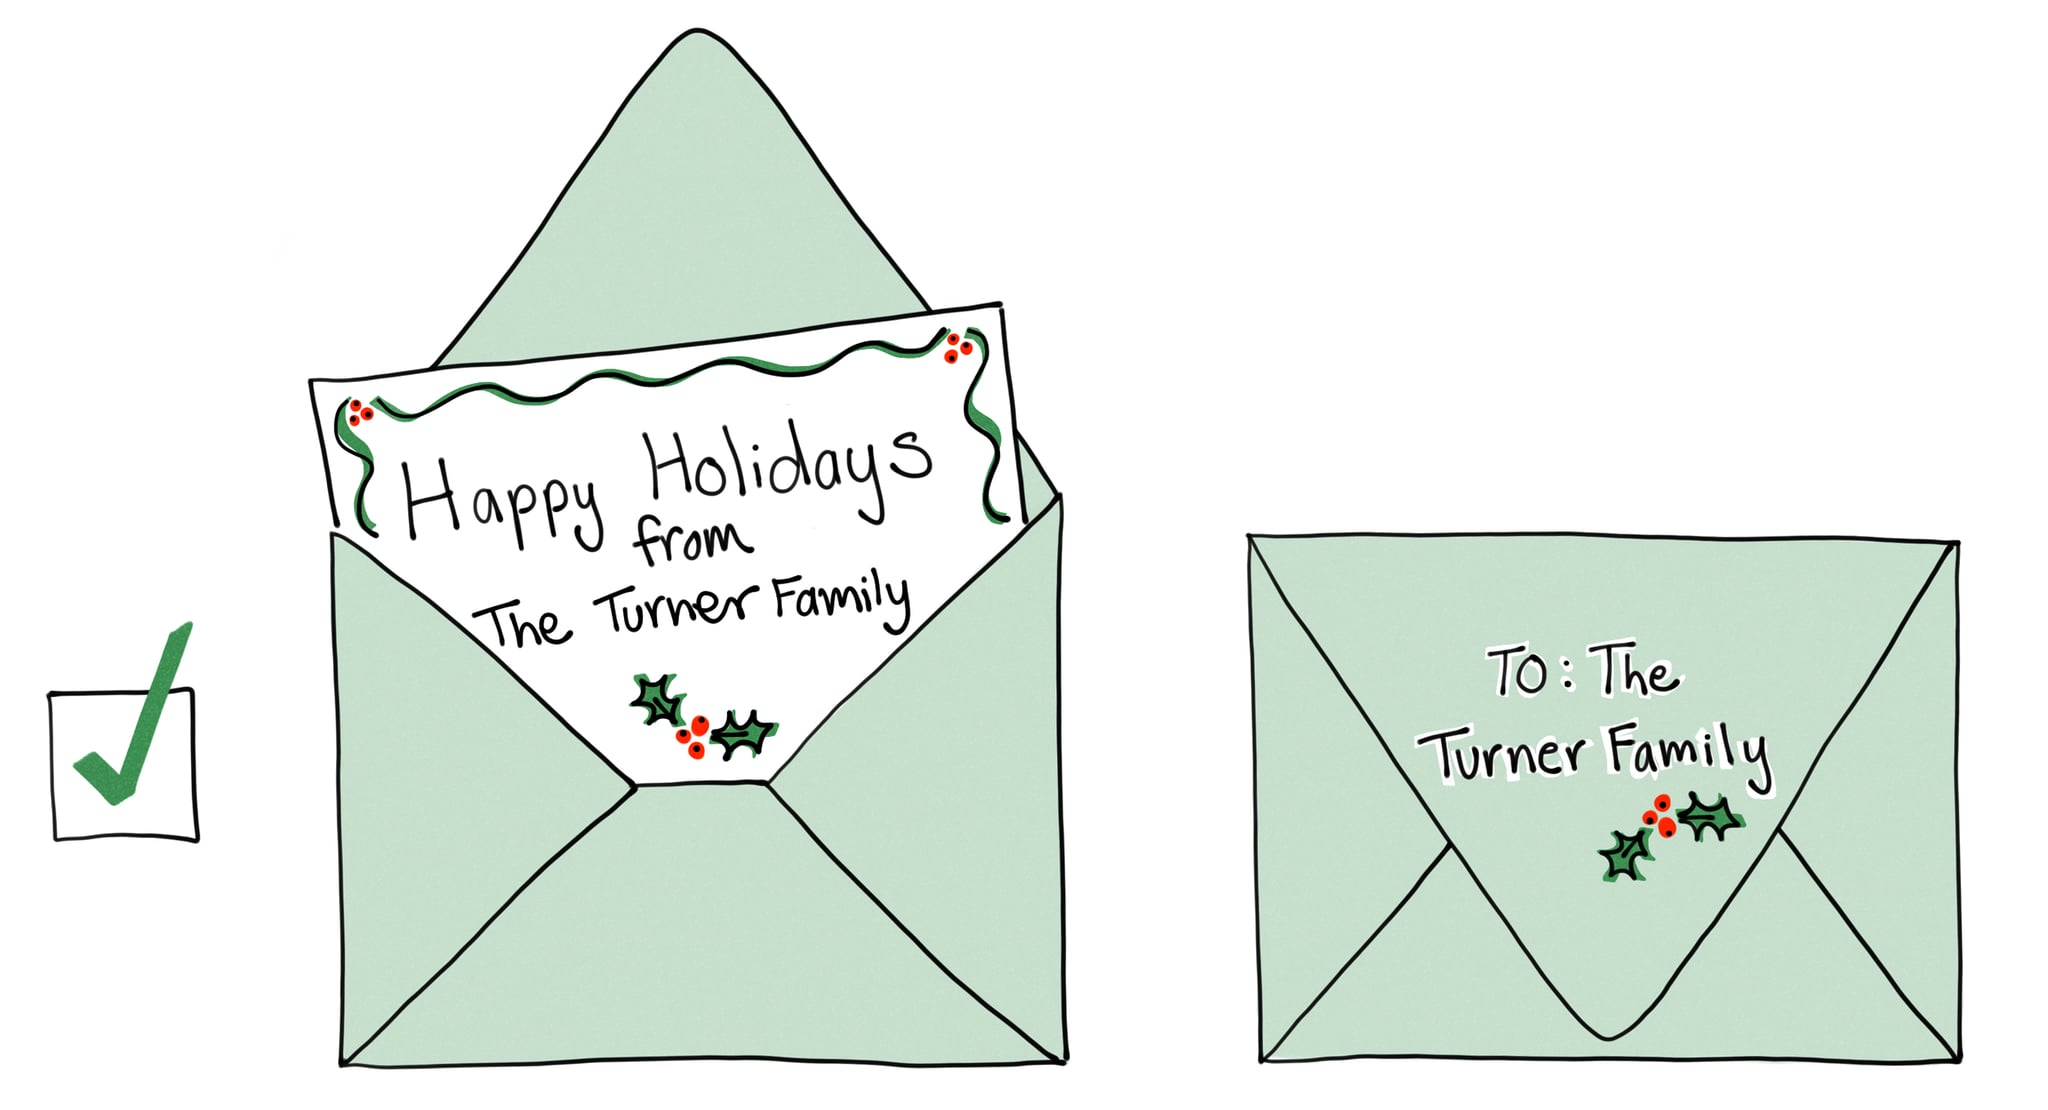 How to make last names plural on holiday cards popsugar family and spread warm greetings and holiday cheer not poor grammar this season m4hsunfo